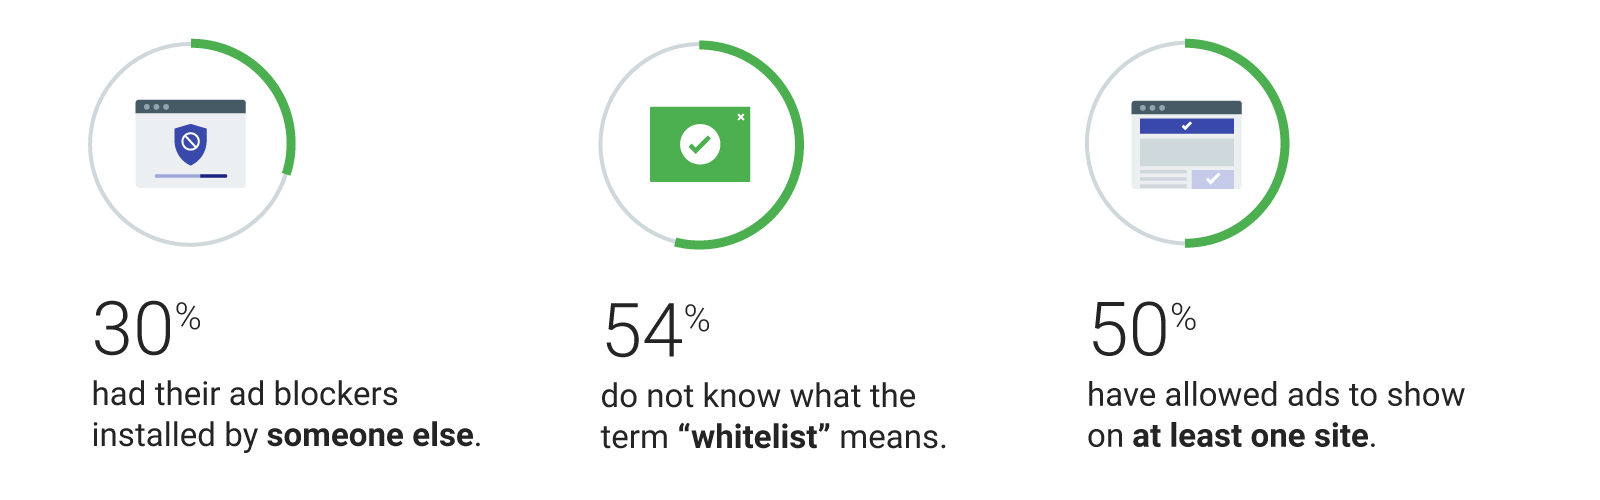 "30% had their ad blockers installed by someone else; 54% do not know what ""whitelist"" means; 50% have allowed ads on at lease one site."